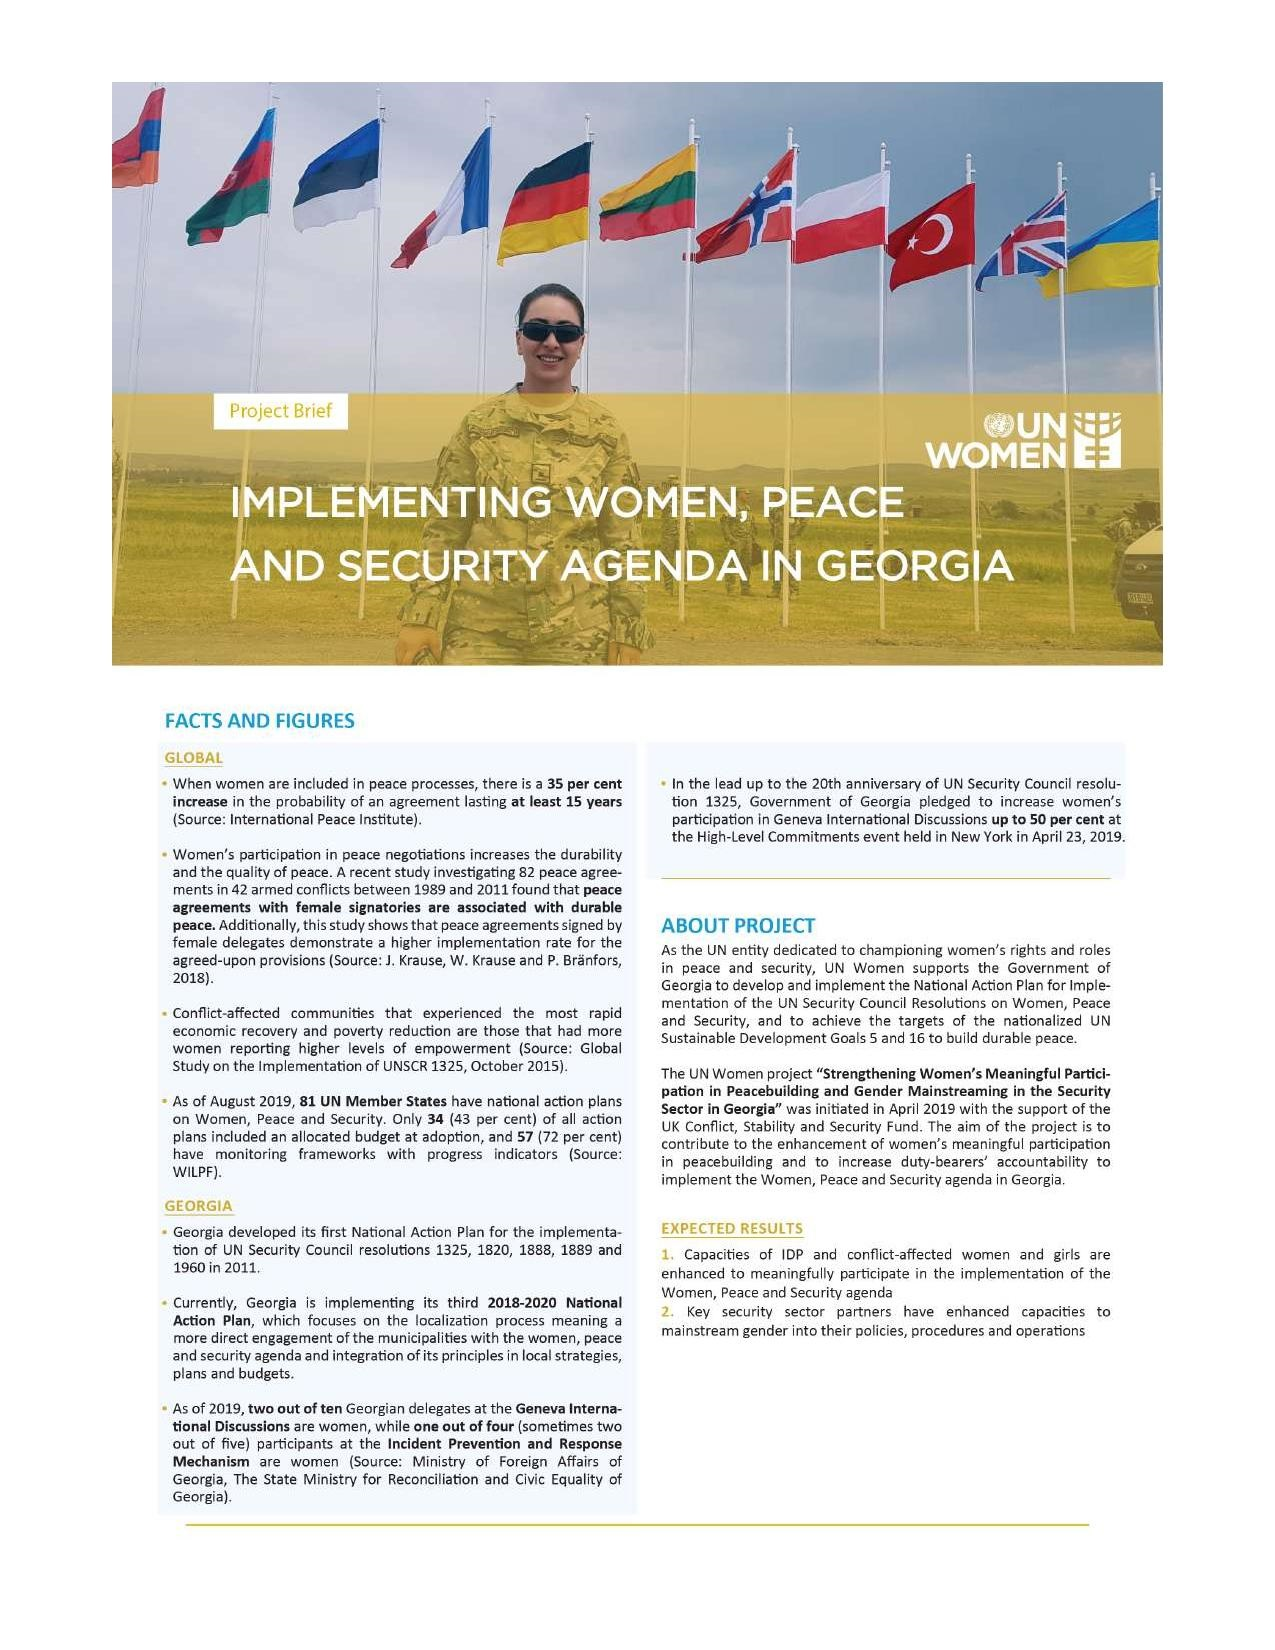 """short description of the UN Women project """"Strengthening Women's Meaningful Participation in Peacebuilding and Gender Mainstreaming in the Security Sector in Georgia"""""""